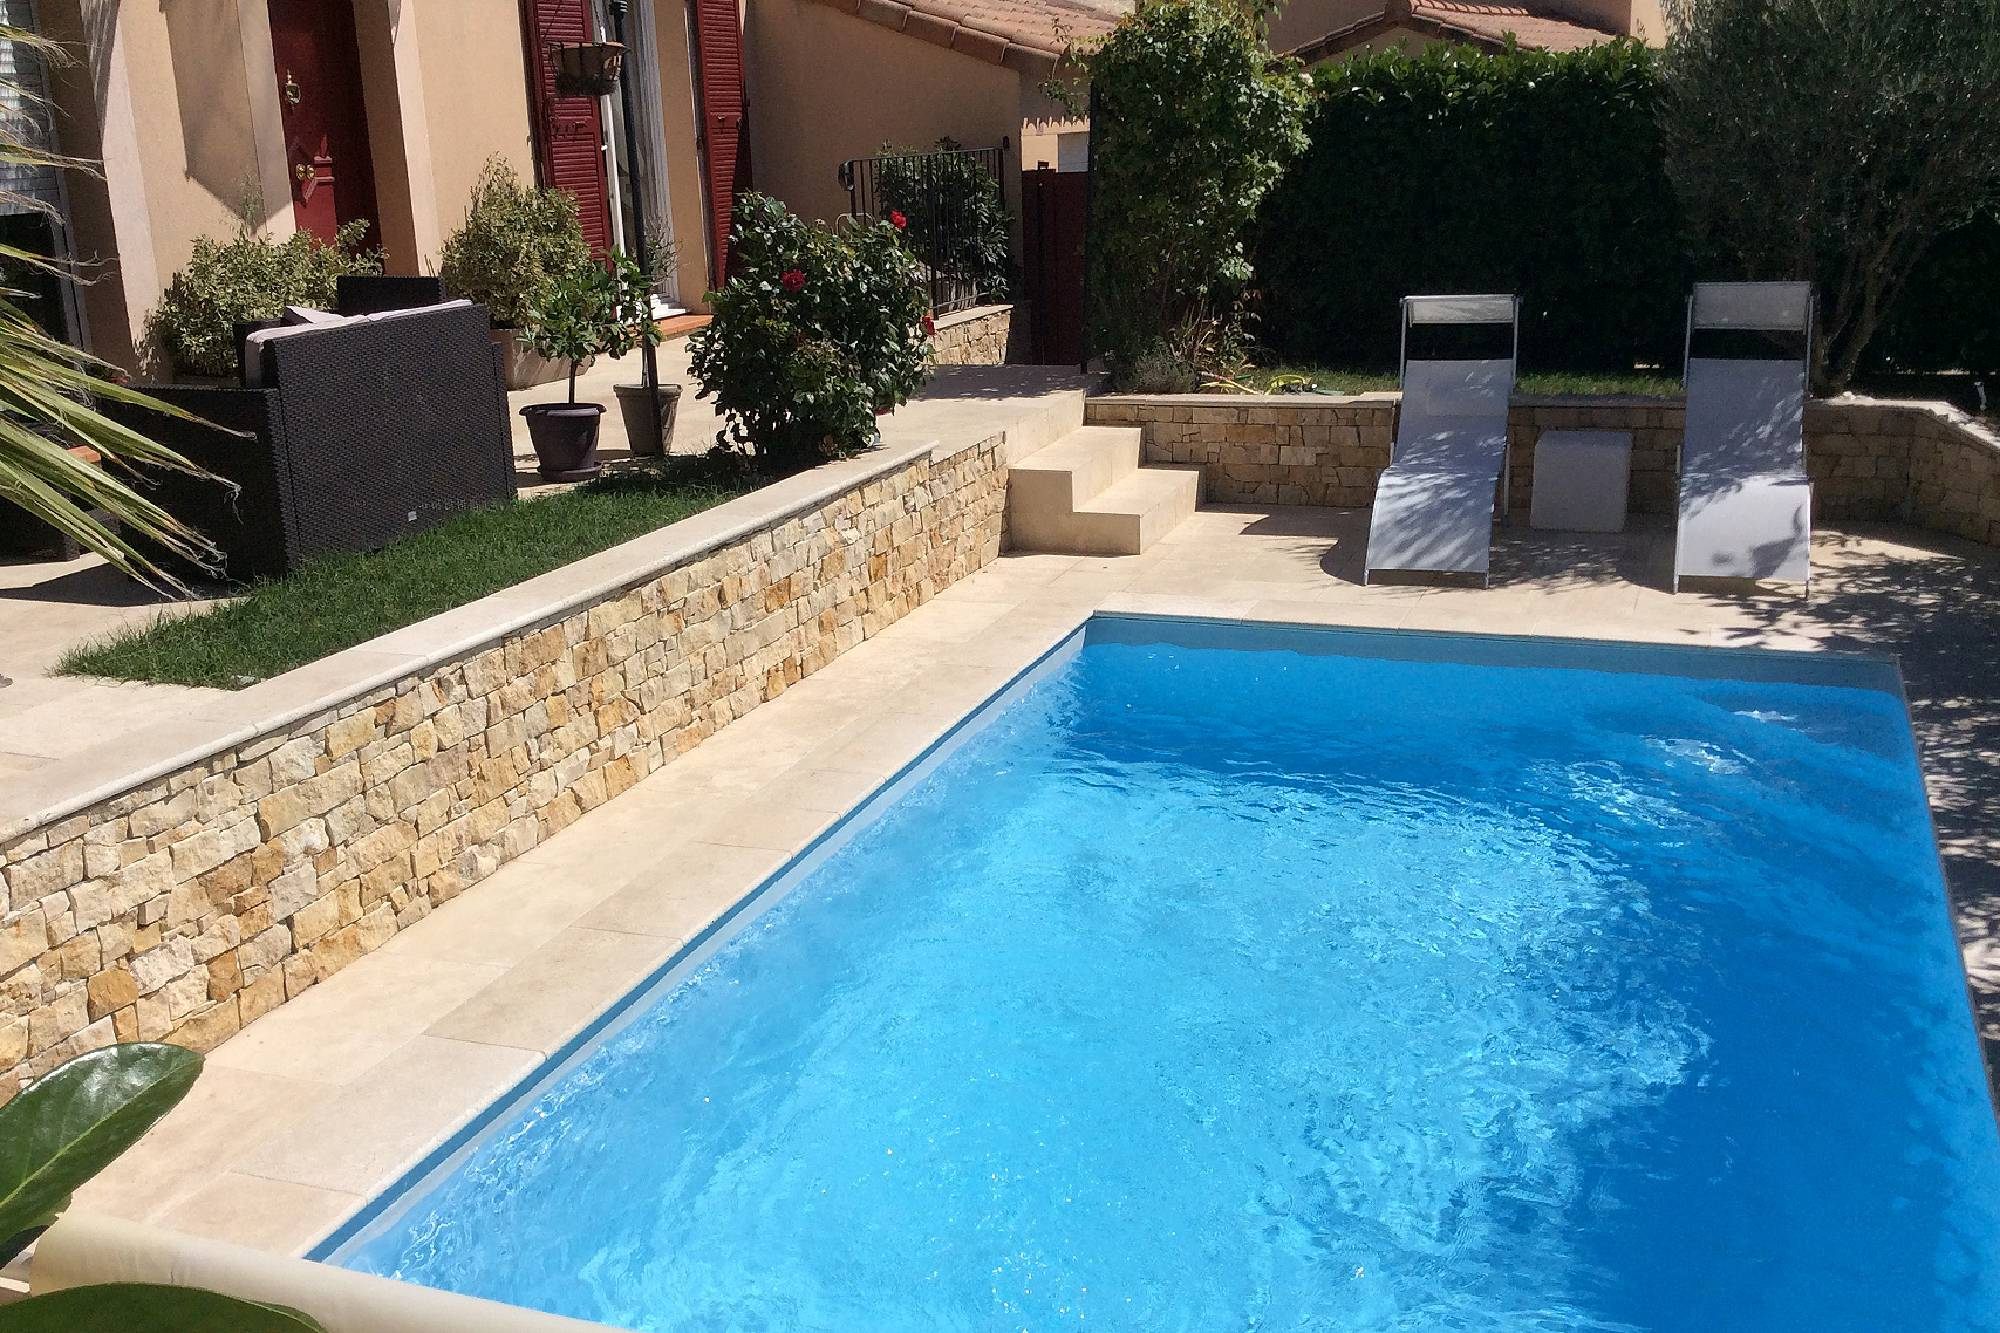 Concessionnaire piscines desjoyaux aubagne for Video x piscine